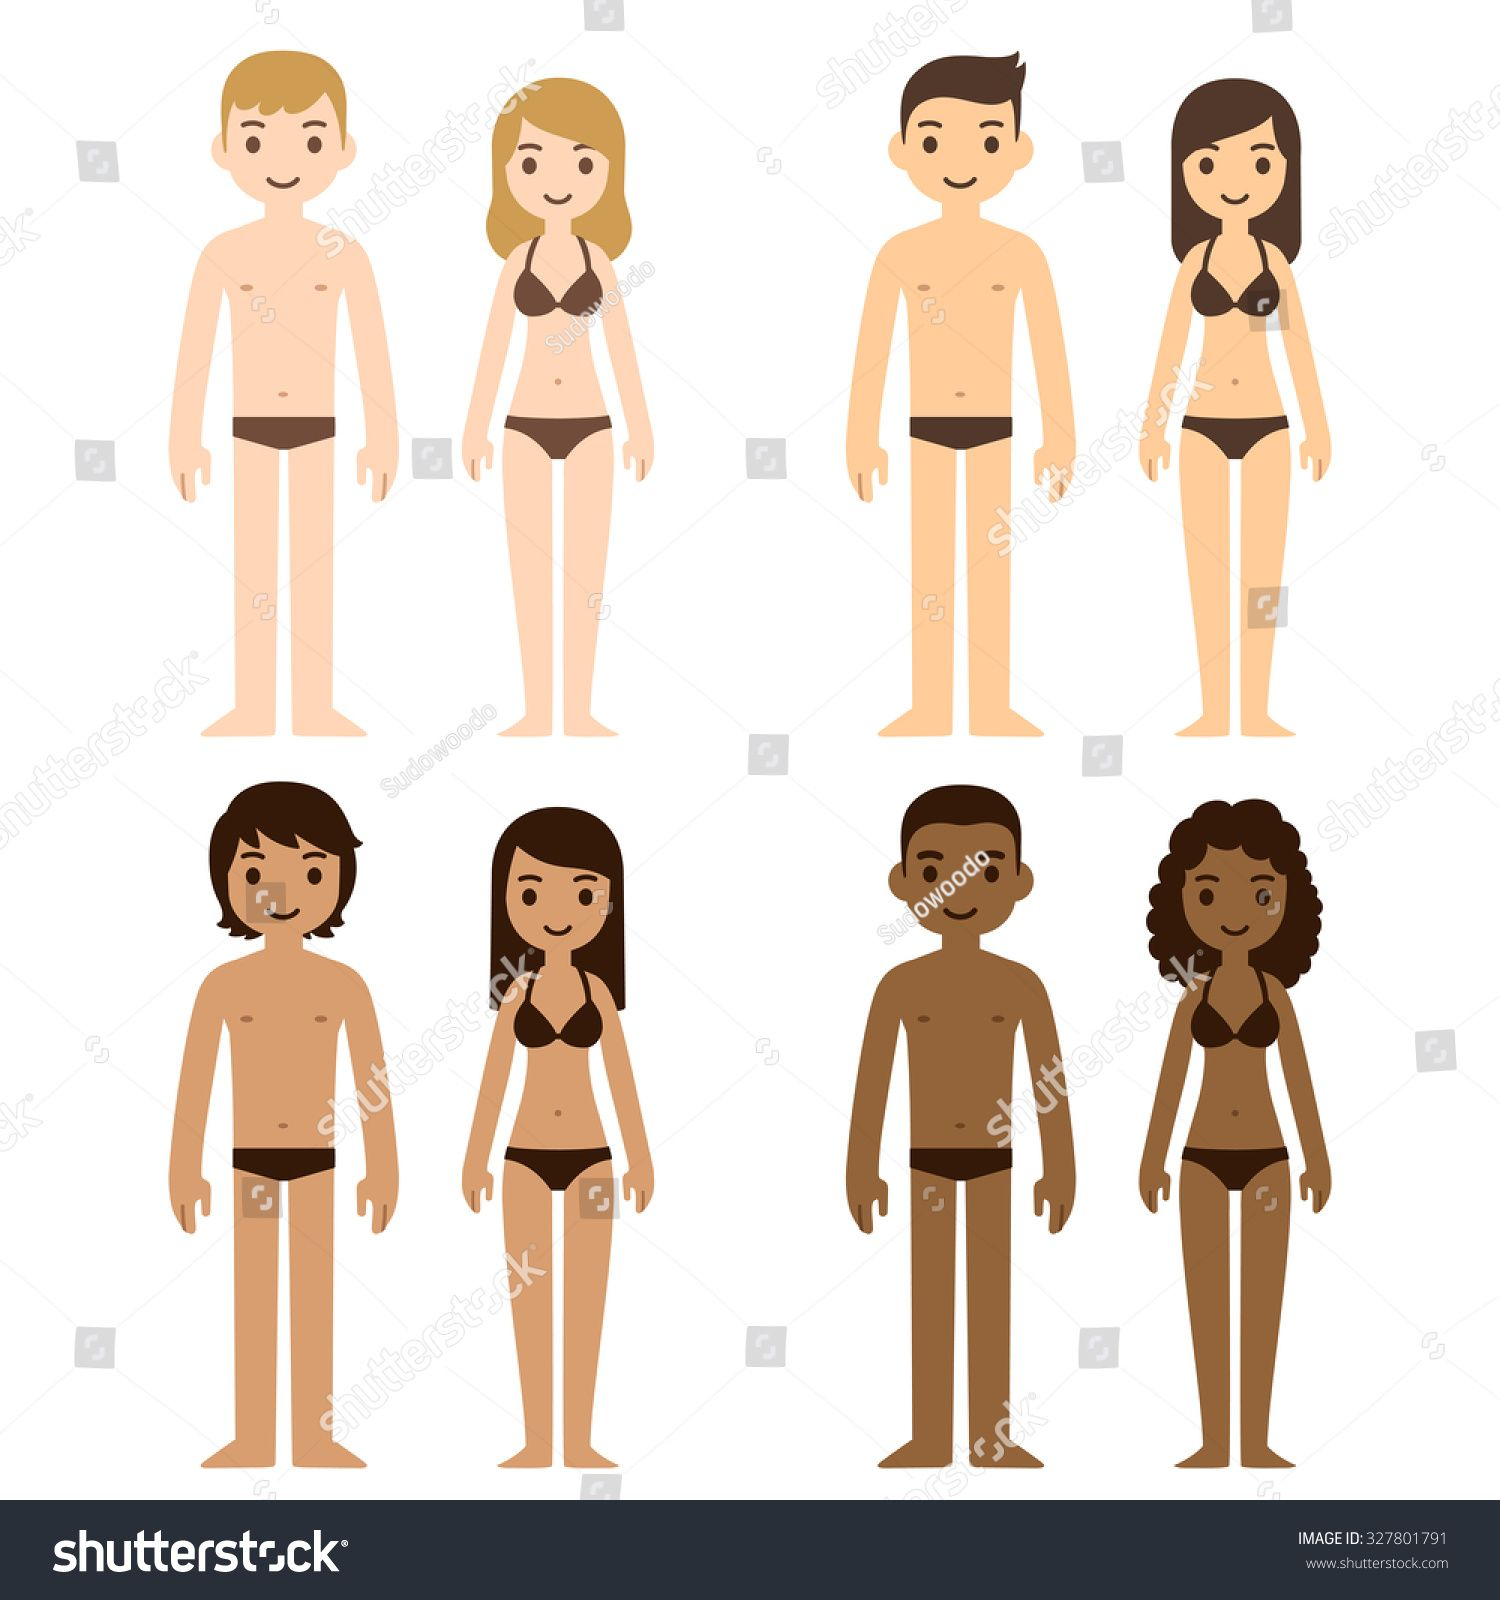 picture royalty free Cute diverse men and. Underwear vector woman